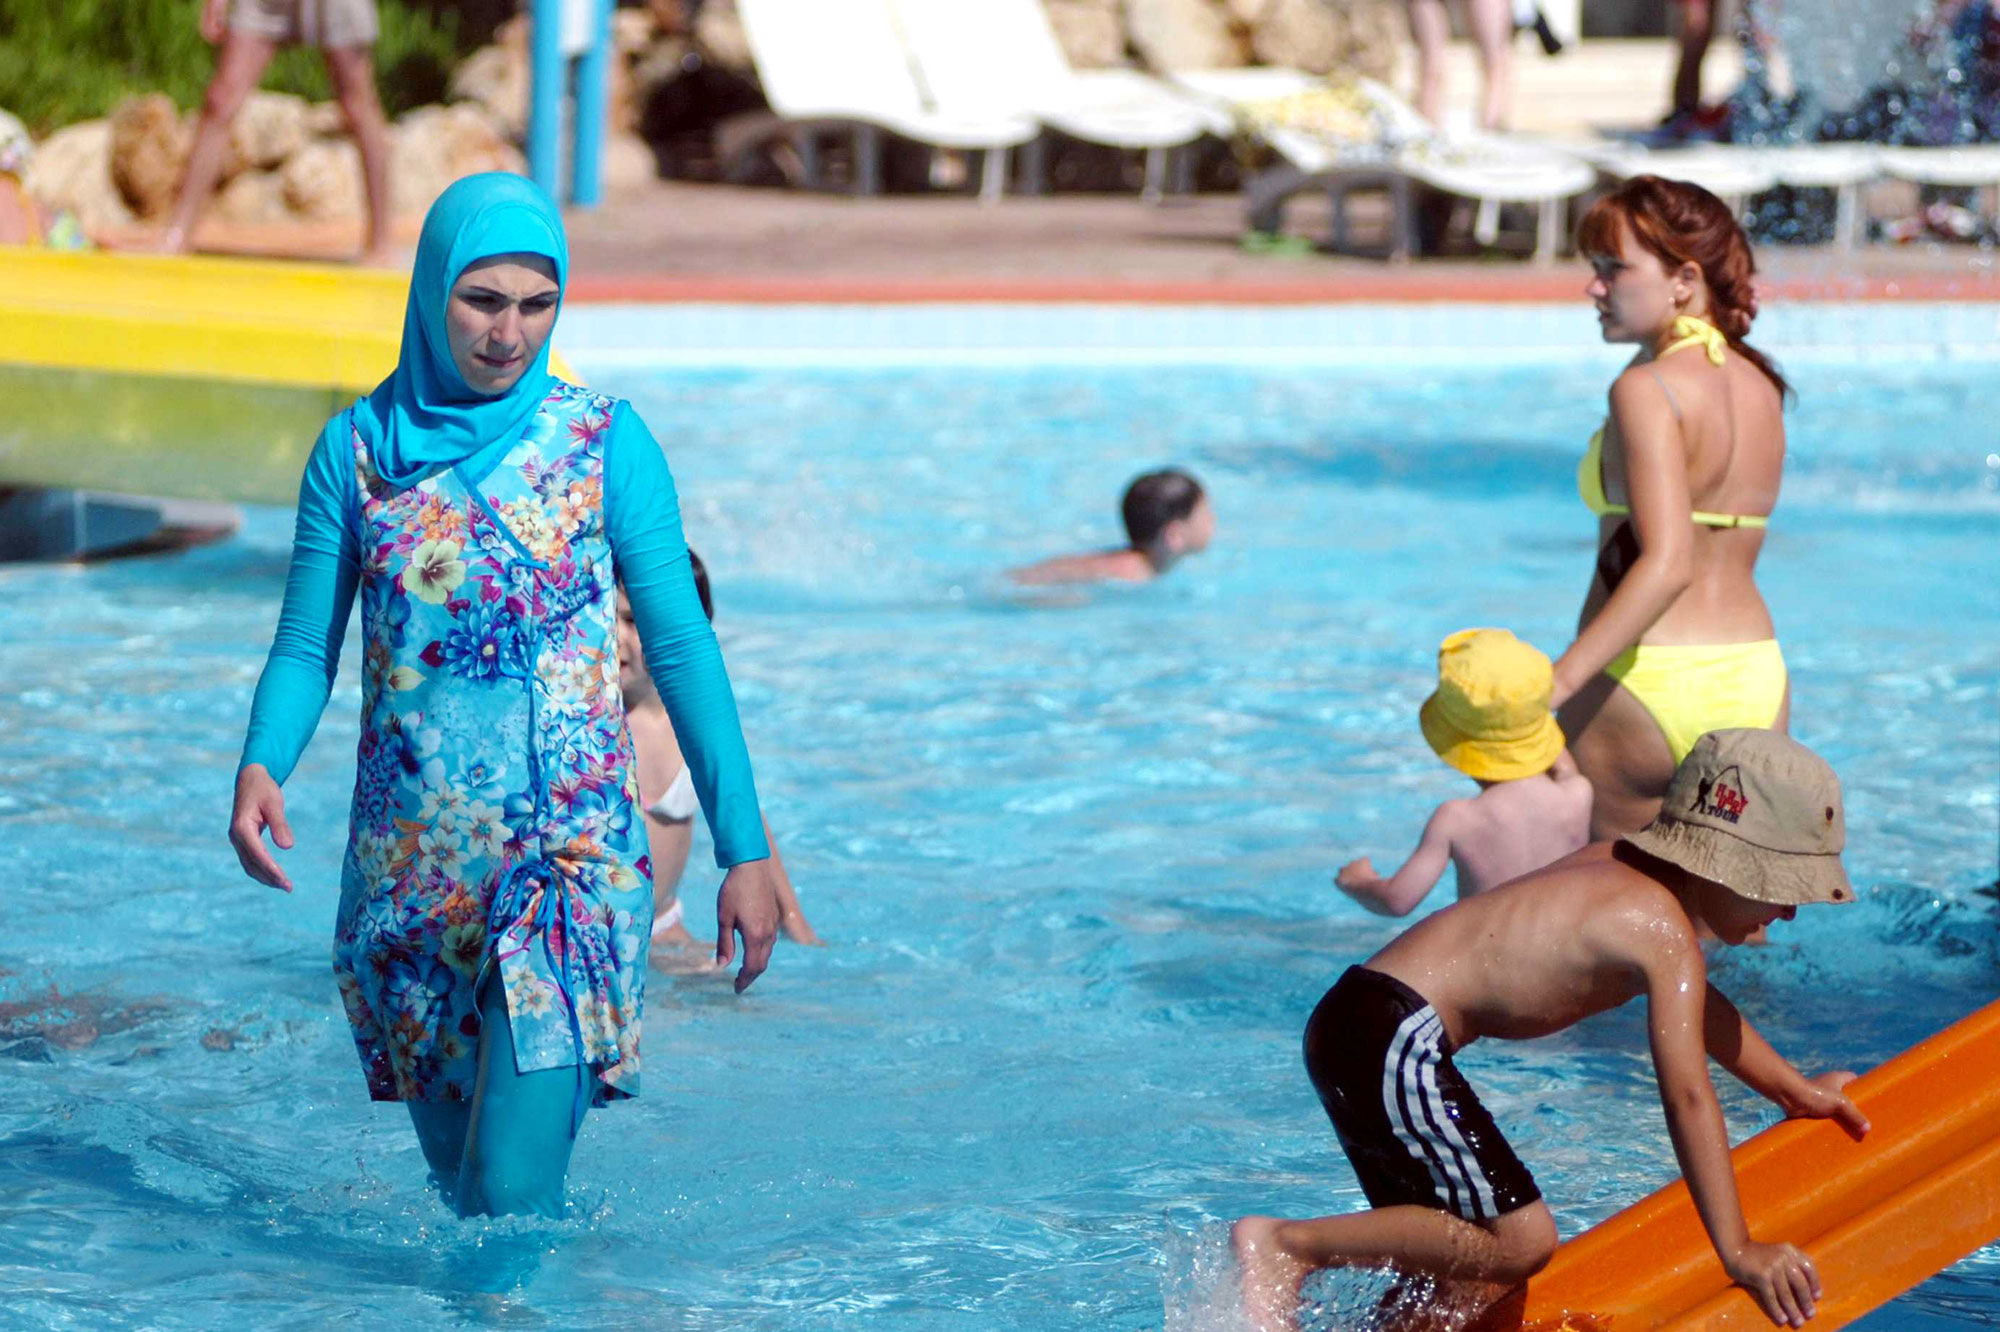 the banning of the burkini a security measure or act of discrimination